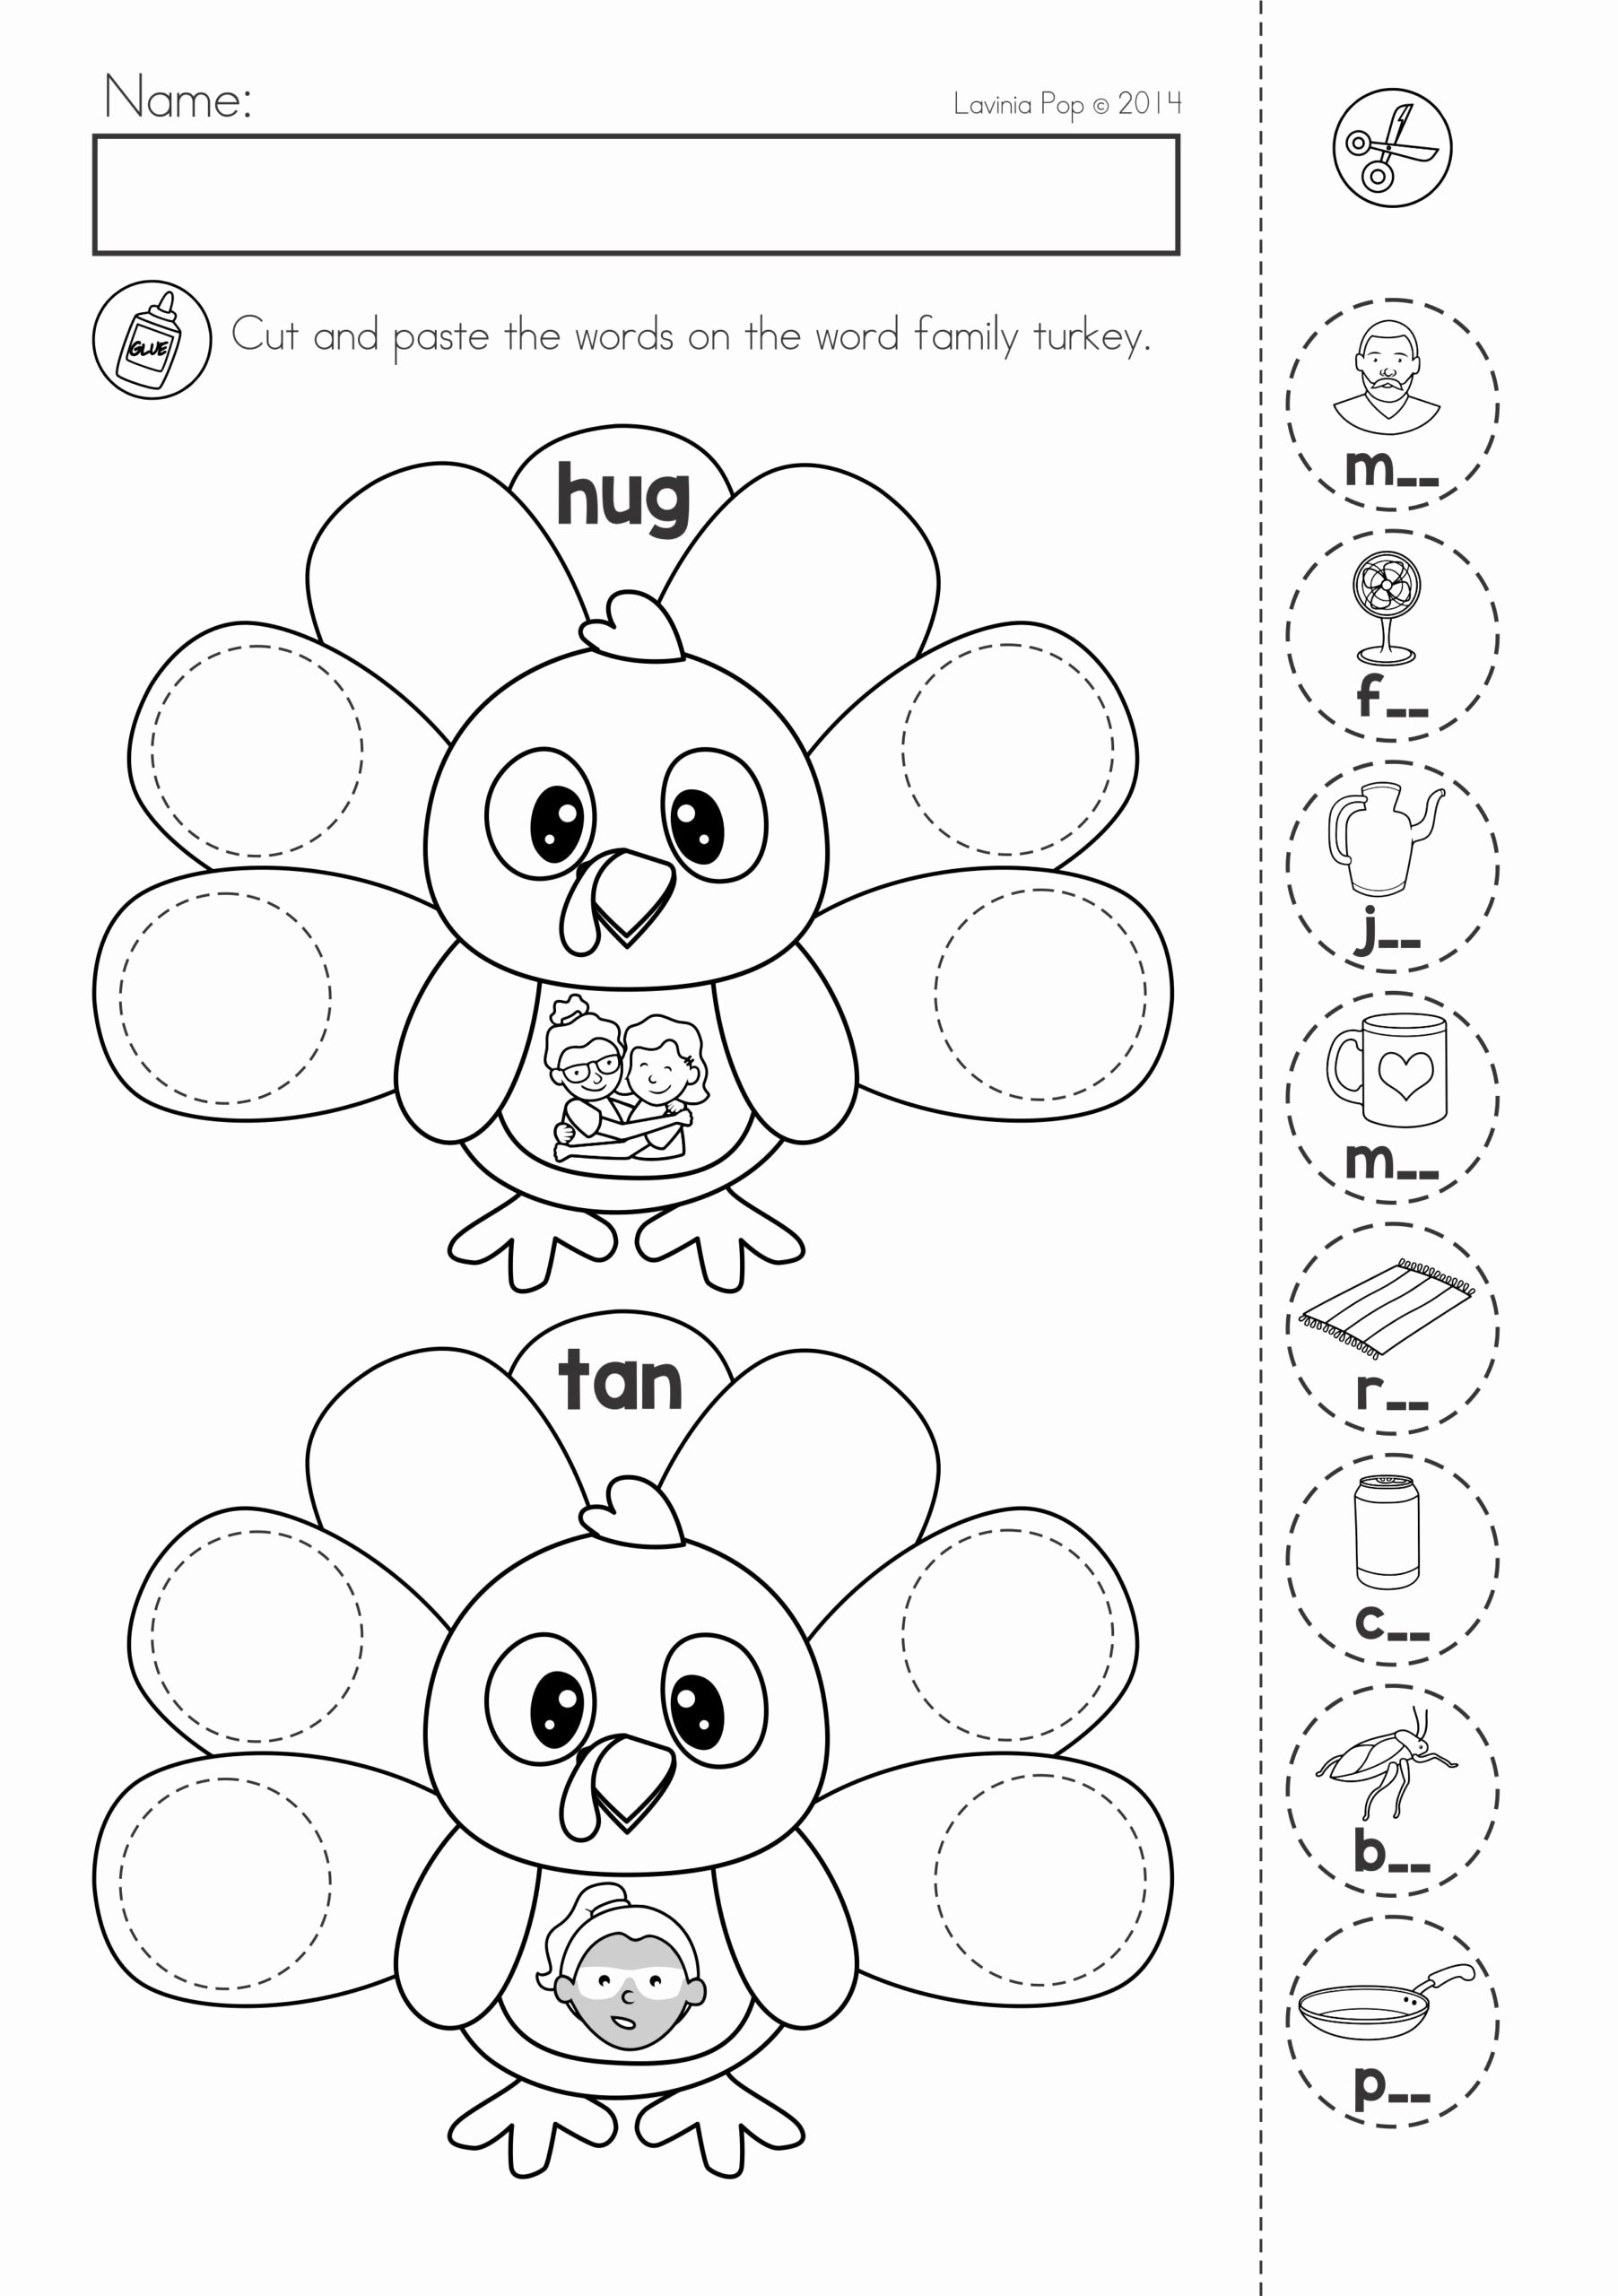 Preschool Cut and Paste Worksheets Fresh Free Preschool Printables Cut and Paste Worksheet Four Line